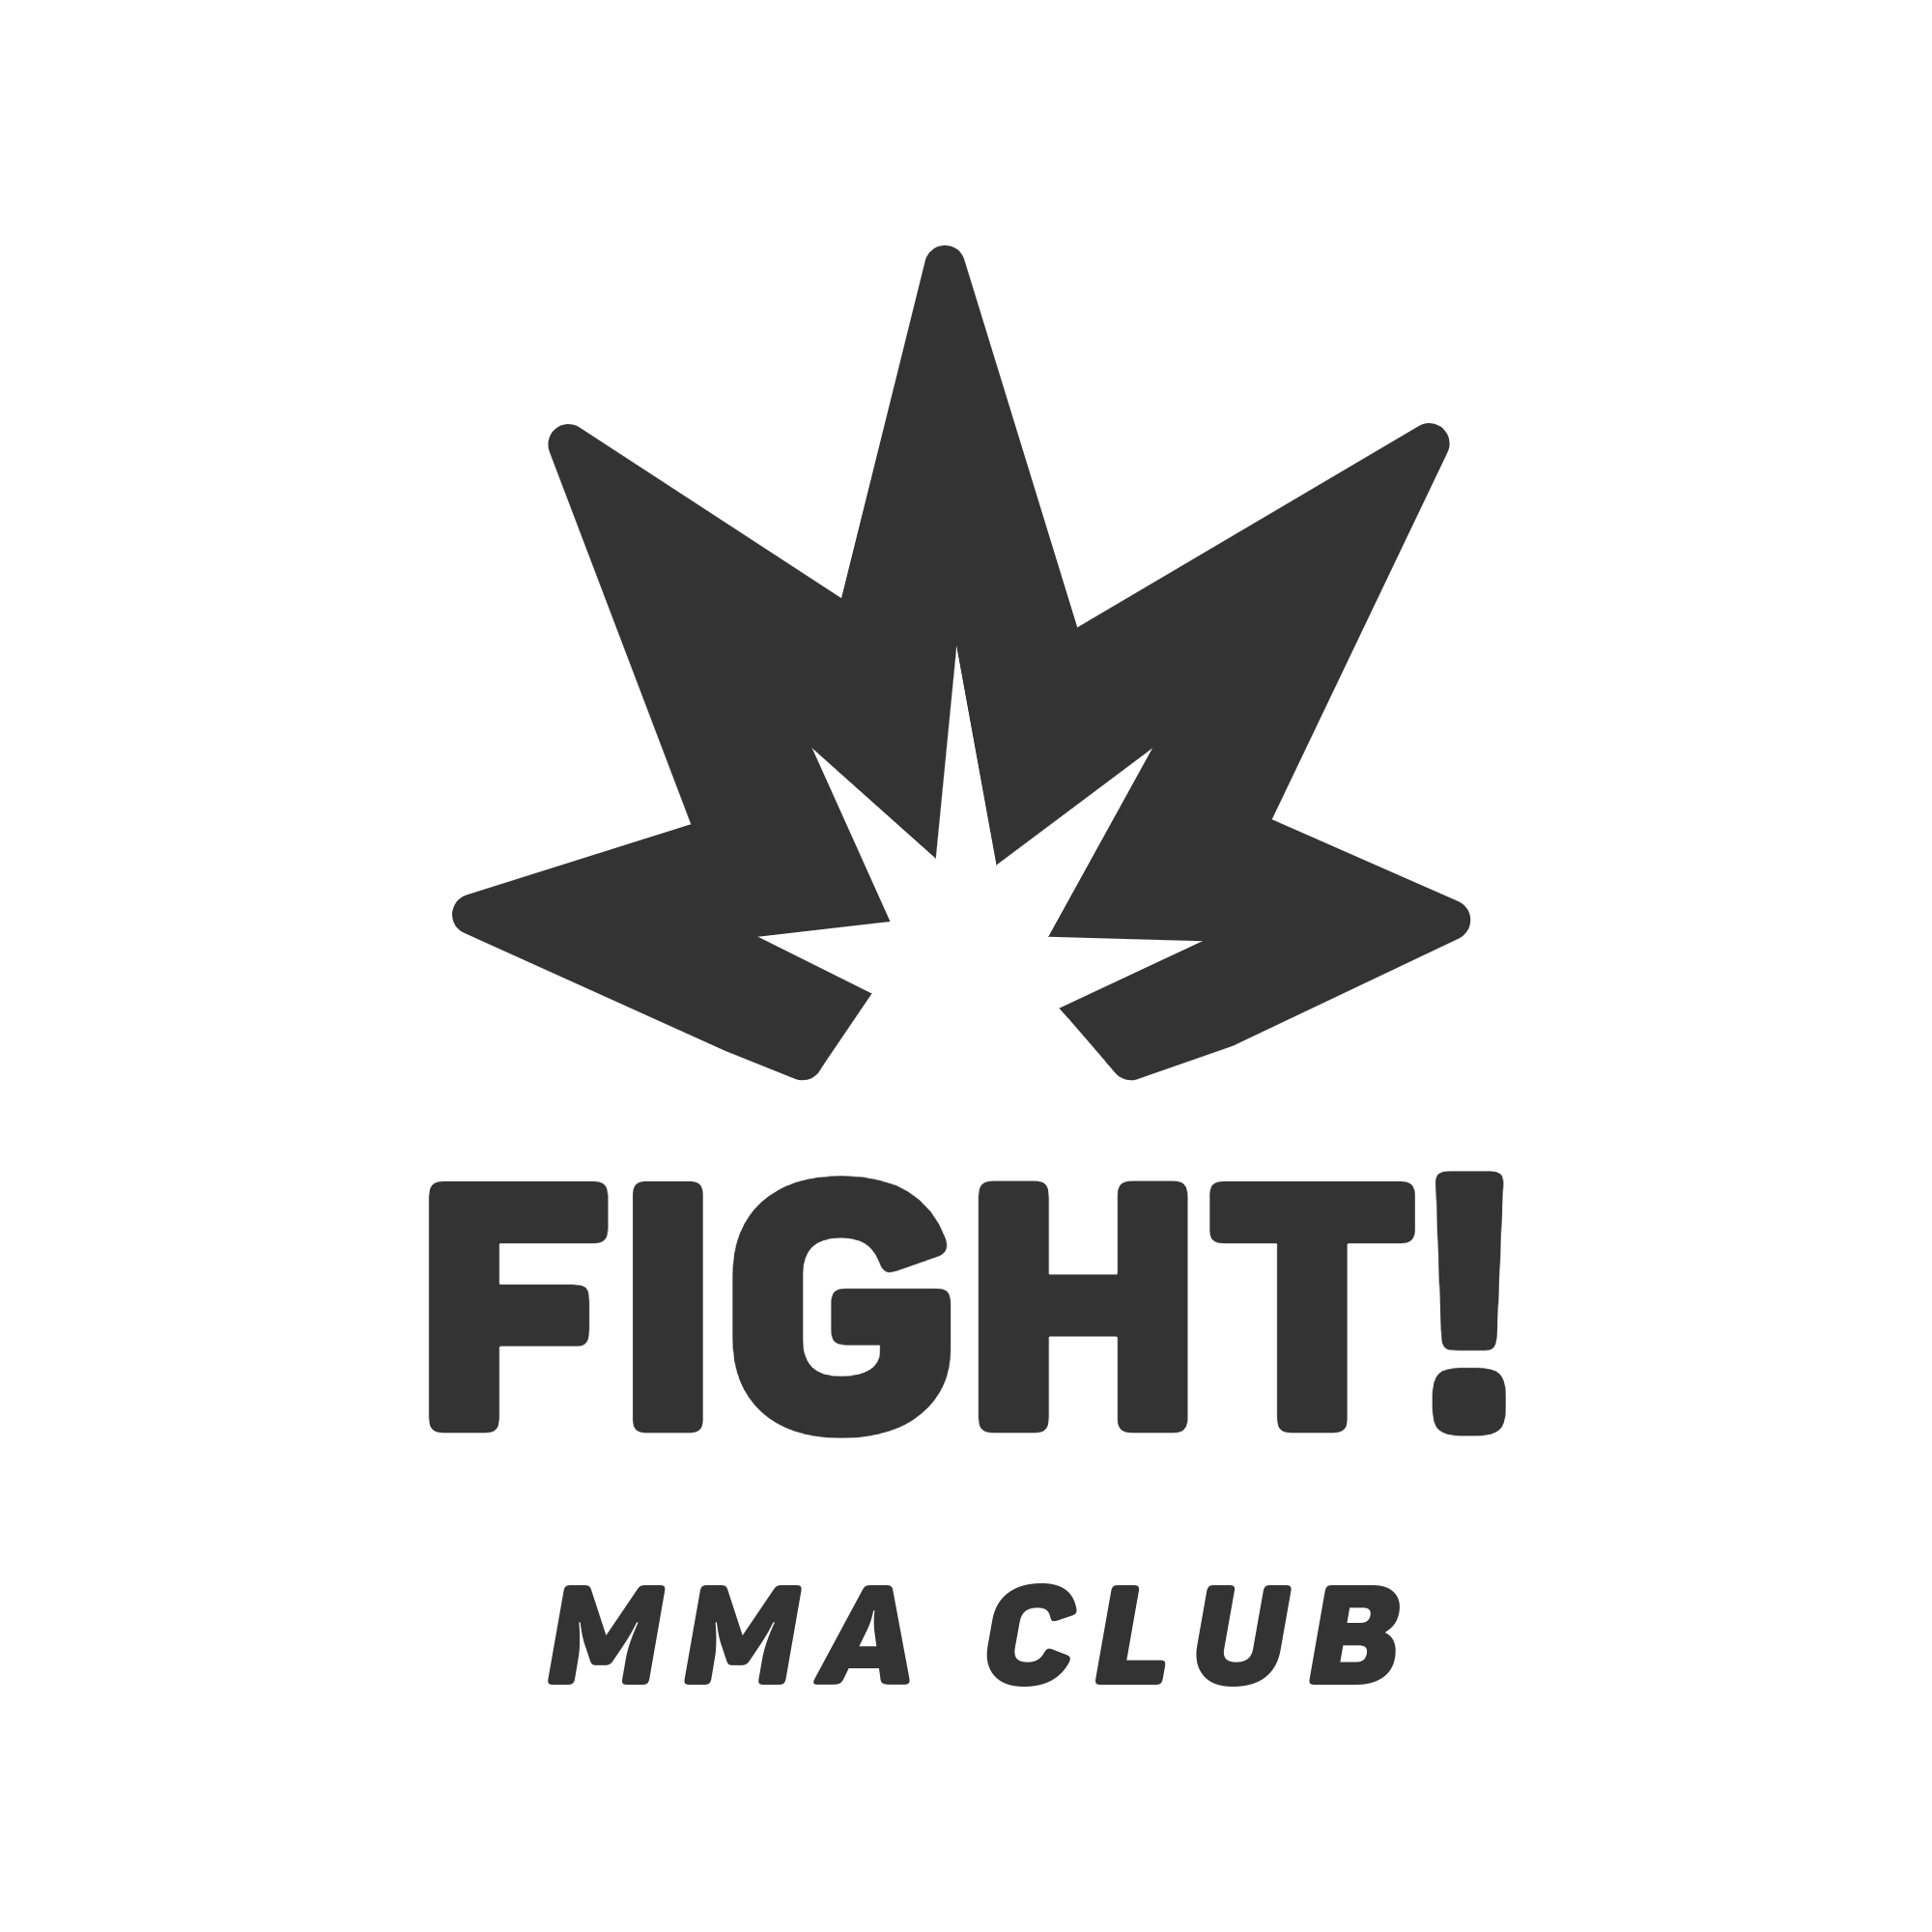 Fight MMA Club Logaster logo